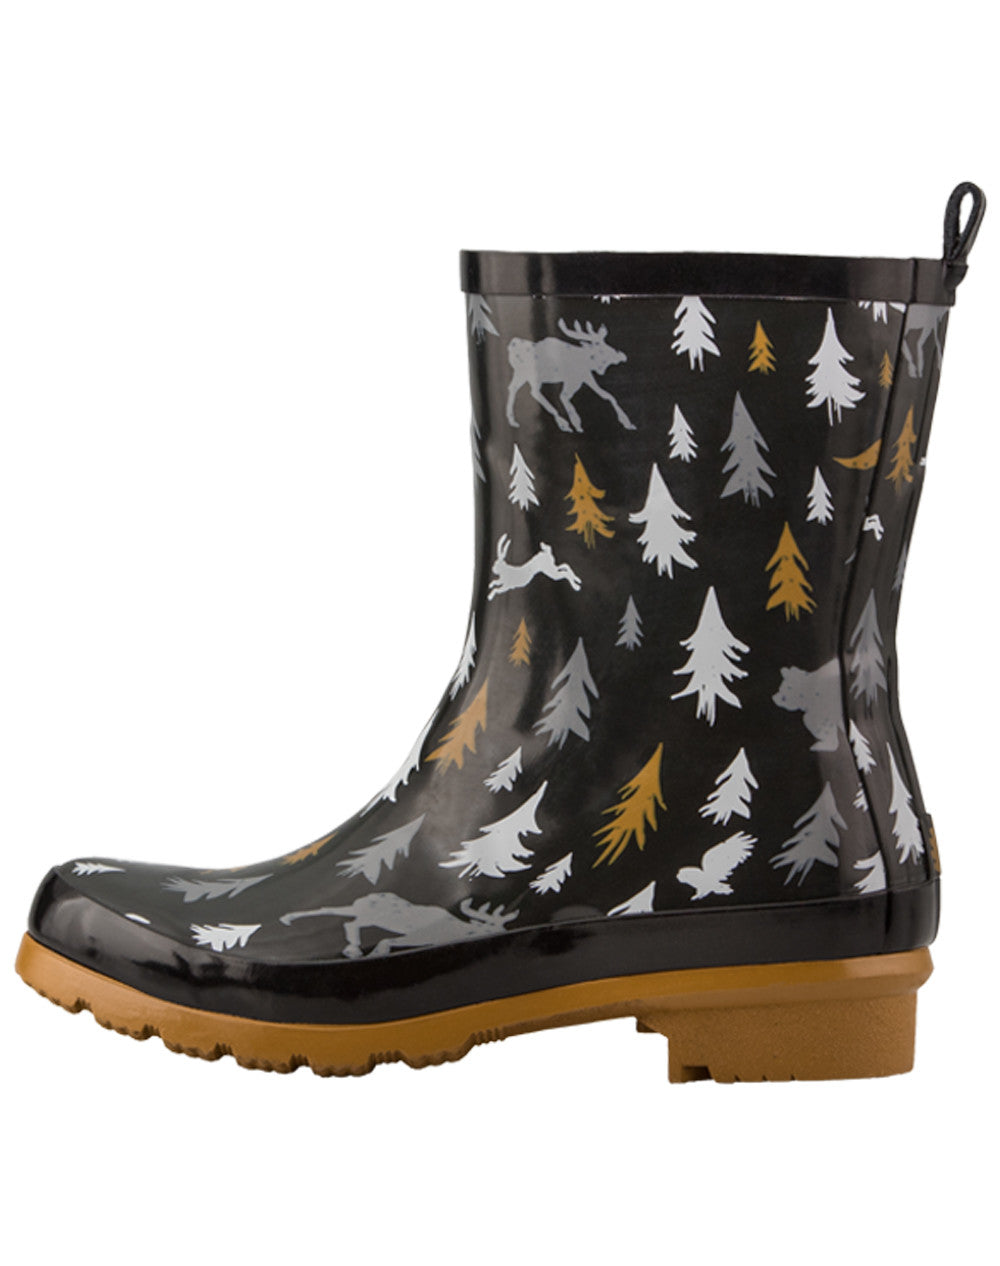 Women's Rain Boots - Noxon - Wildlife Tracker